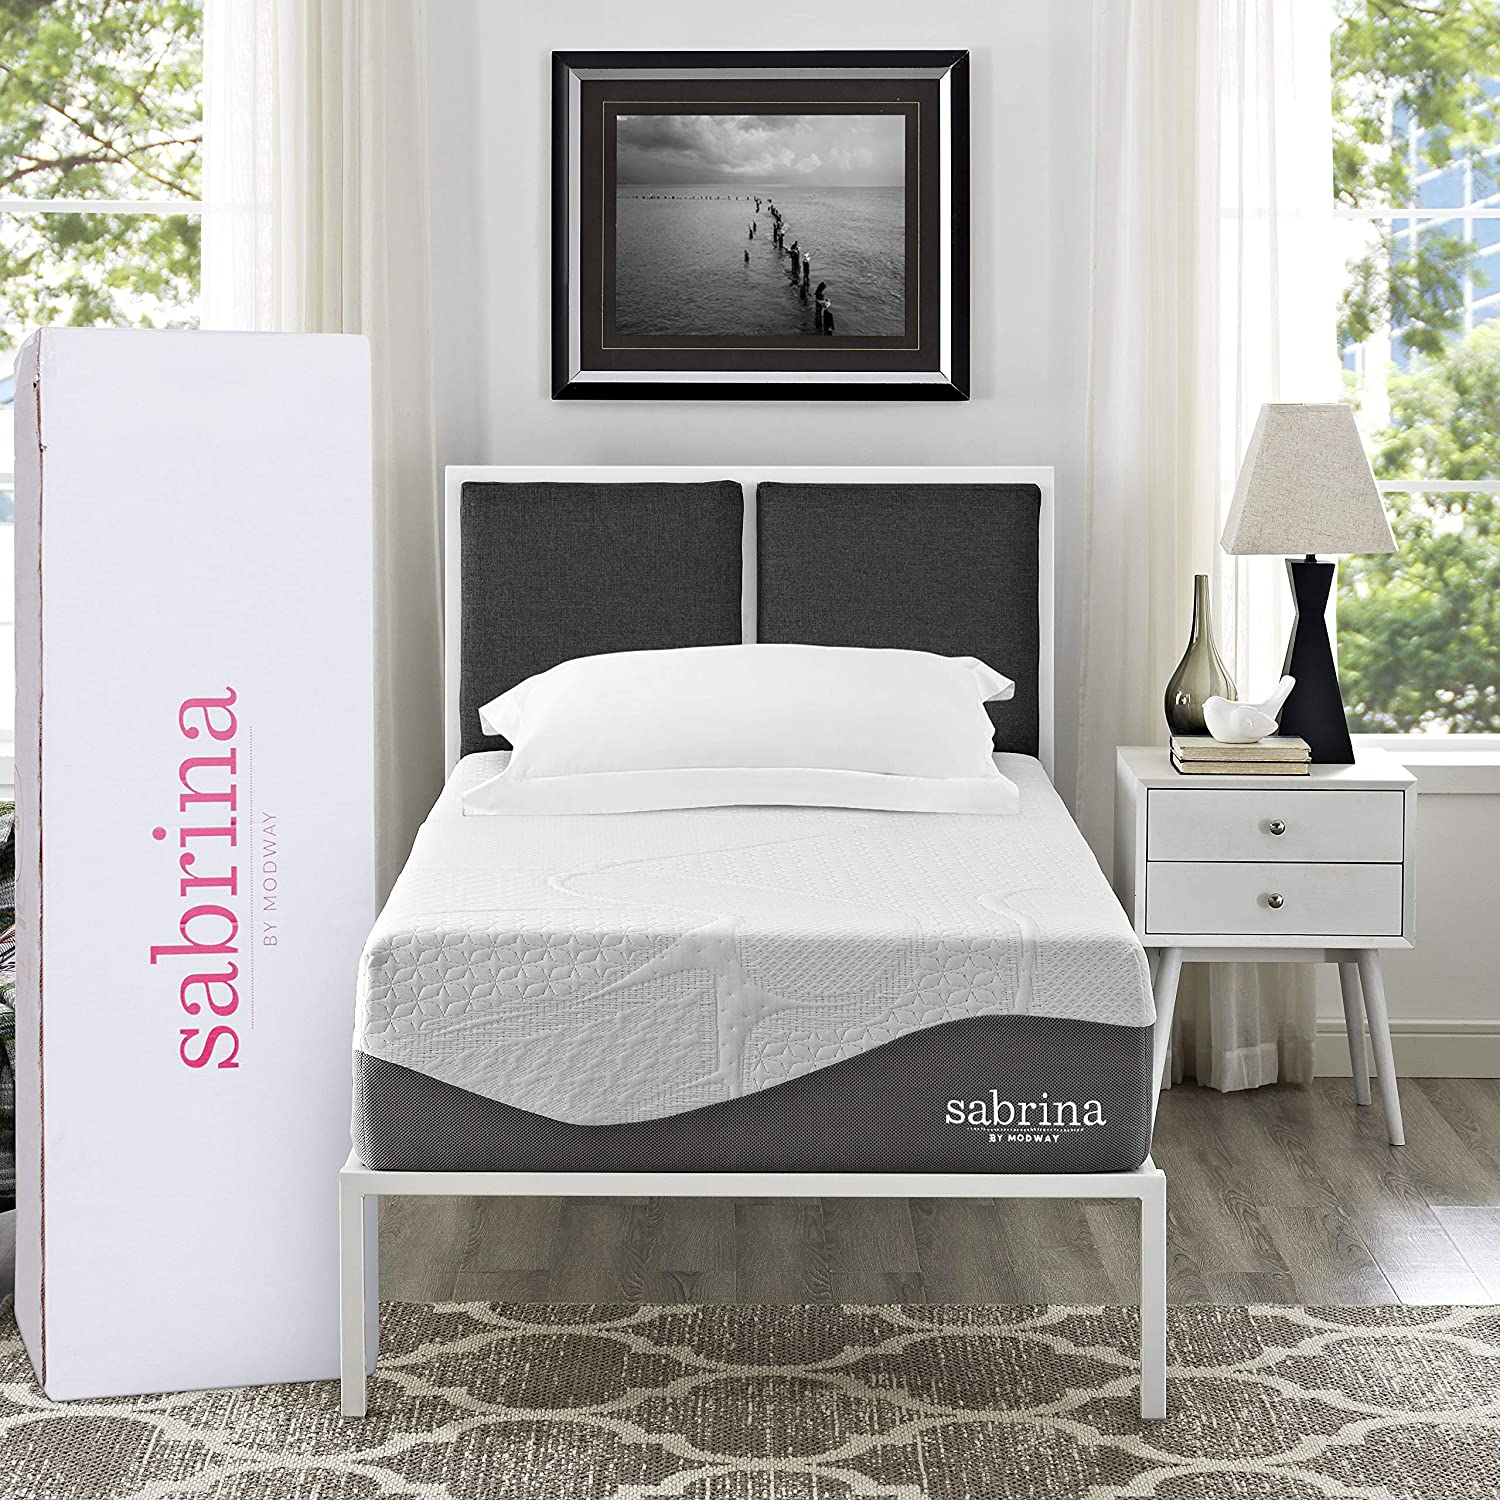 "Modway Sabrina 12"" Latex Air Gel Cooling Memory Twin Mattress with CertiPUR-US Certified Foam-Luxury Firm Mattress-10-Year Warranty"